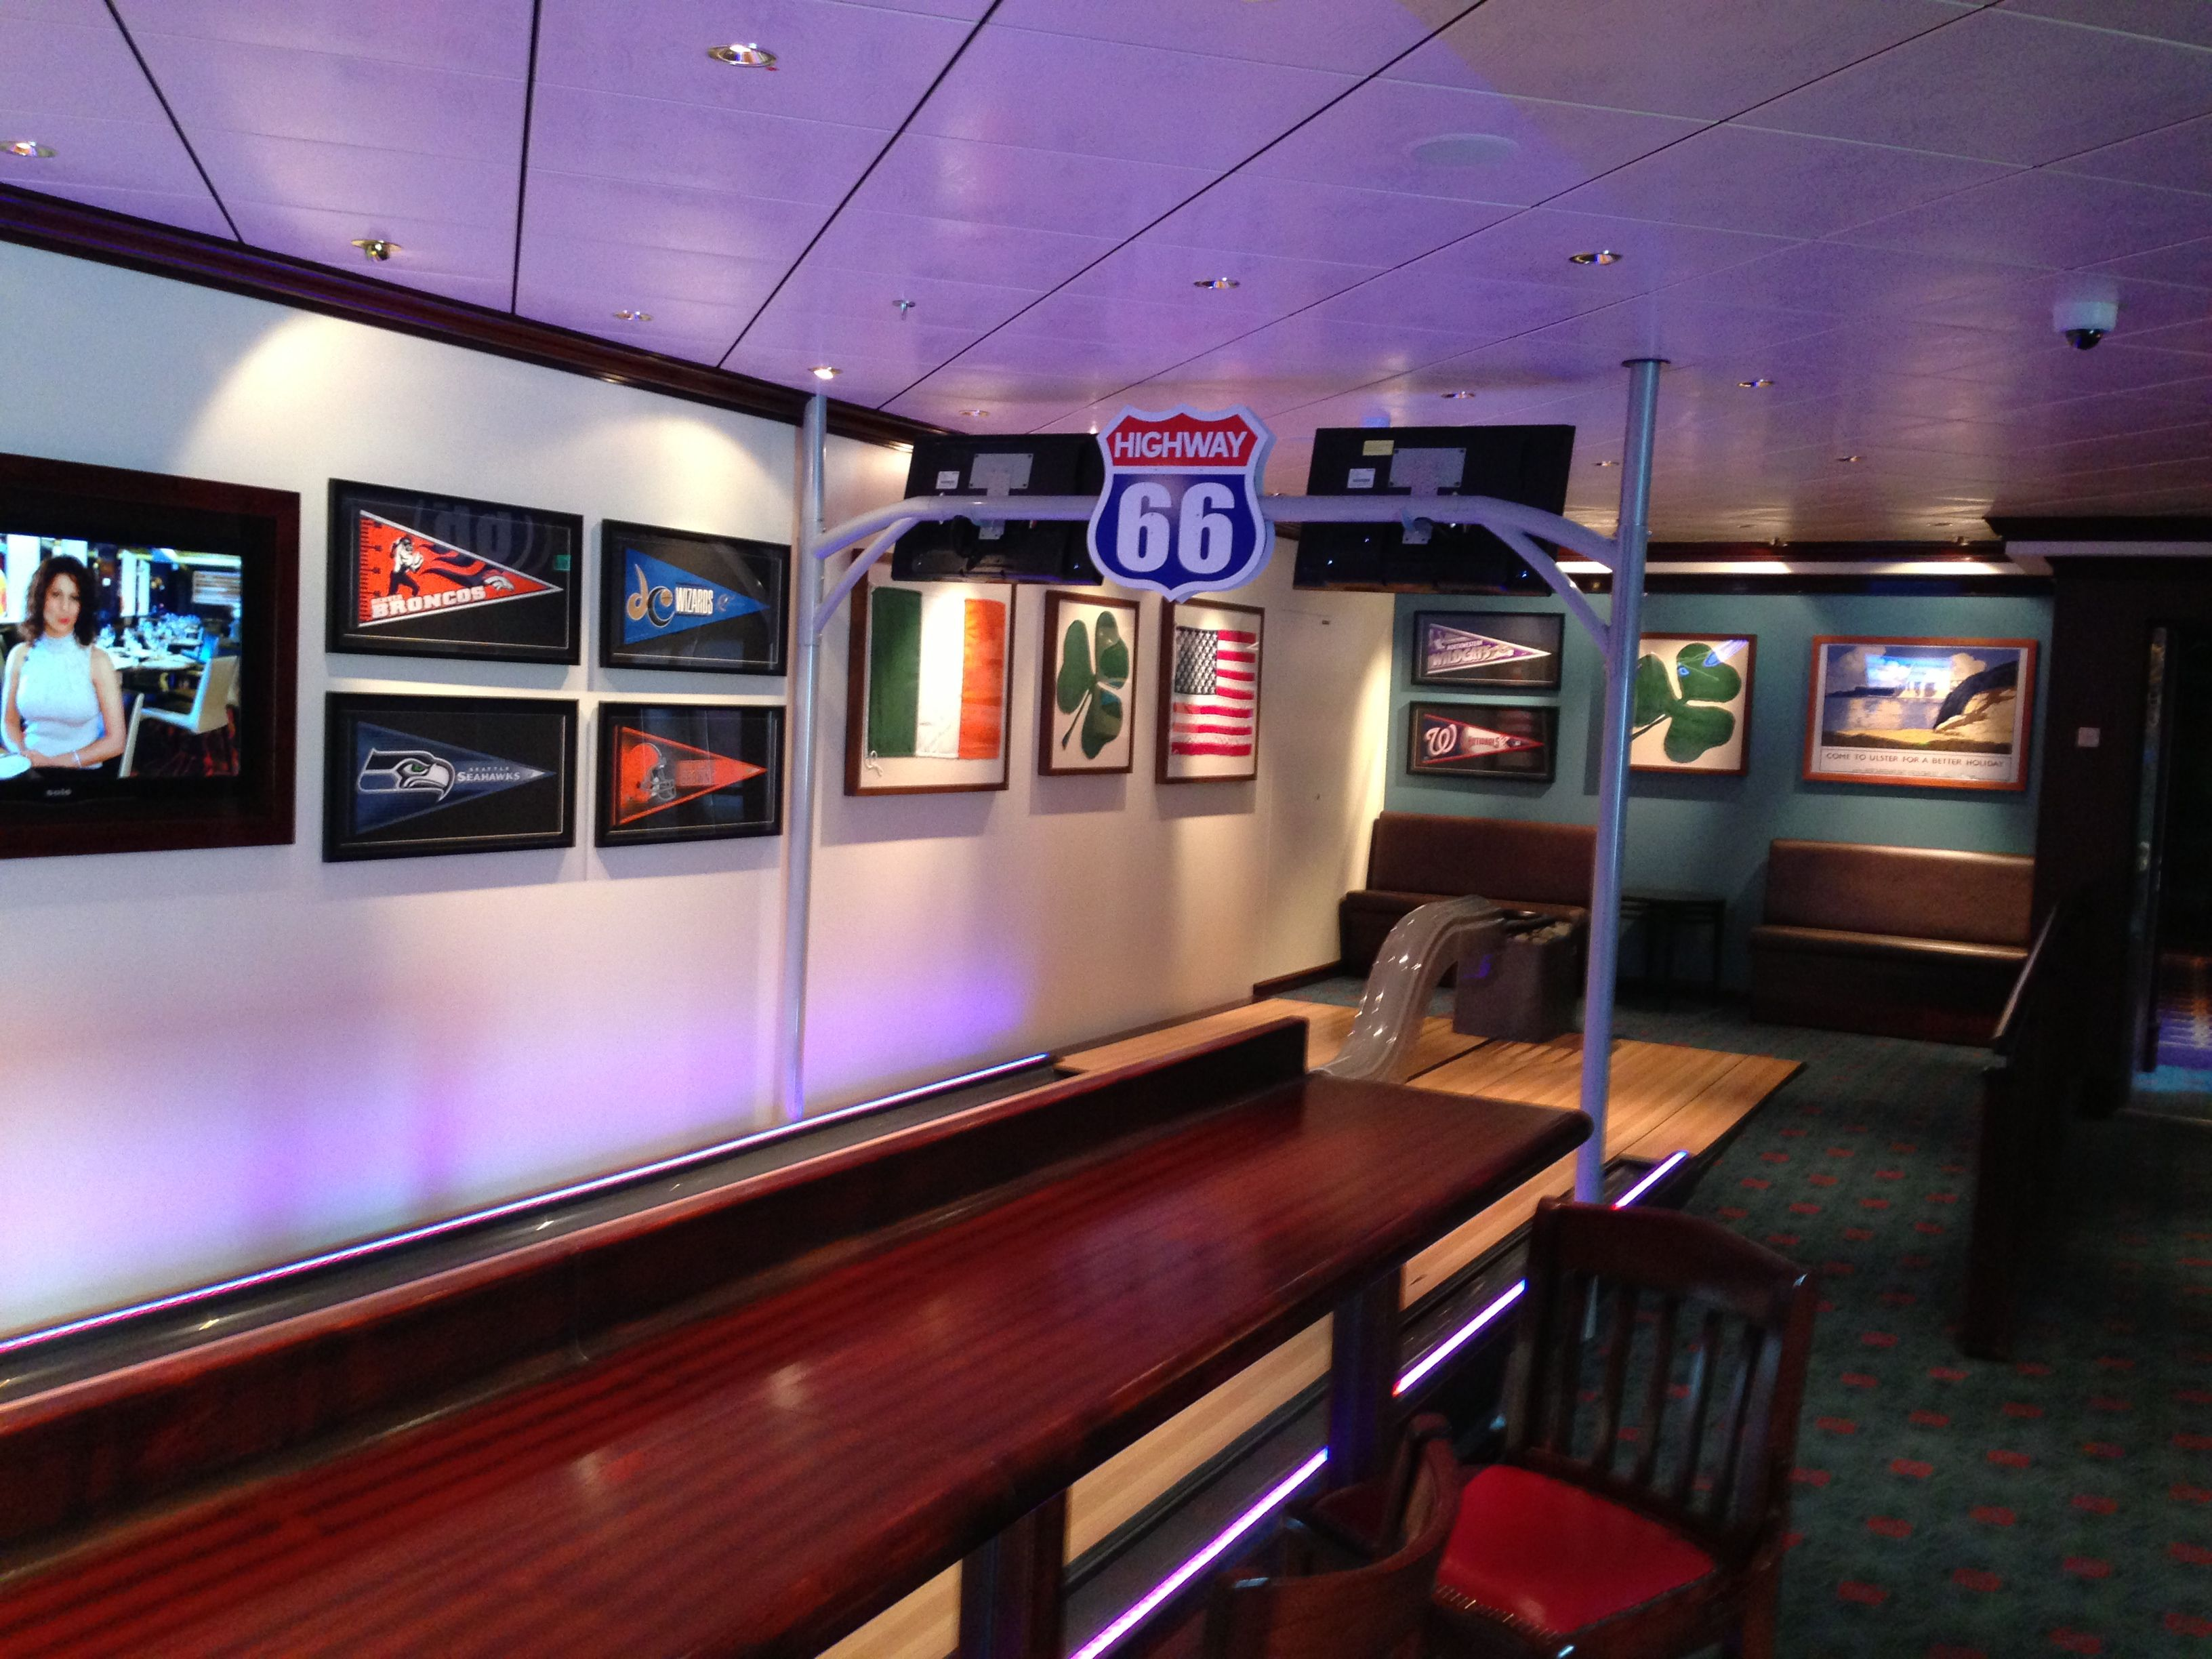 Entourage Teens Club For Ages 13 17 - Norwegian Breakaway Inaugural